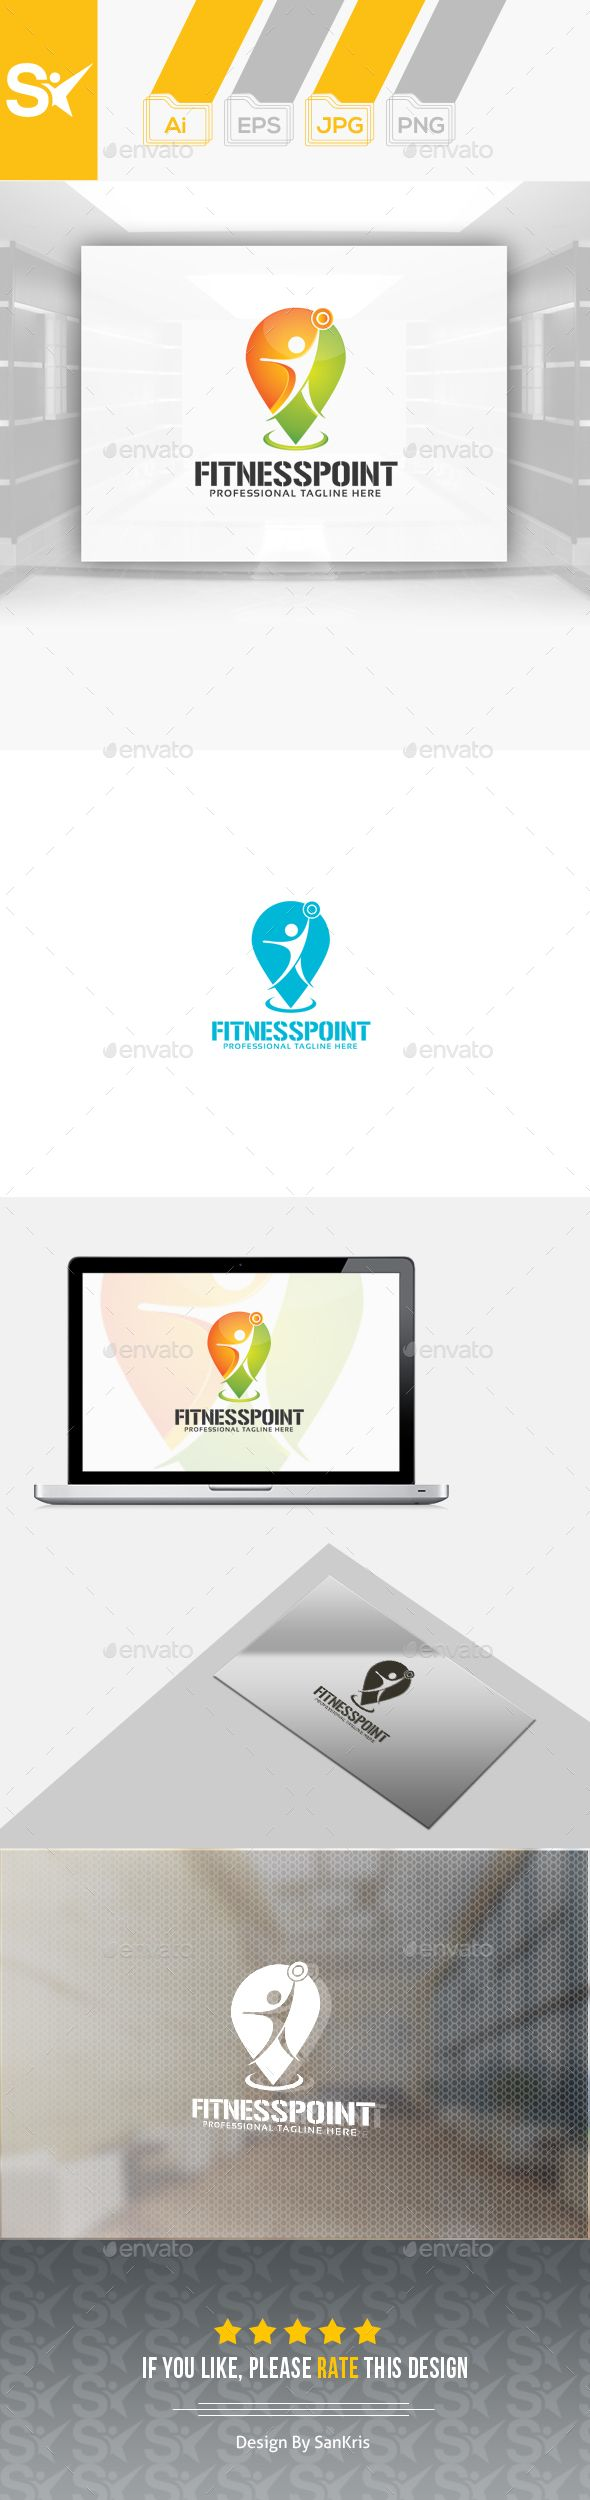 Fitness Point Logo, branding, club, exercise, exercises, fit, fitness, fitness center, fitness place, green, gym, gym location, gymnasium, health, healthy, Human fitness, instructor, location, power, professional, strength, strong, support, tough, trainer, training, training point, weight, wellness, workout